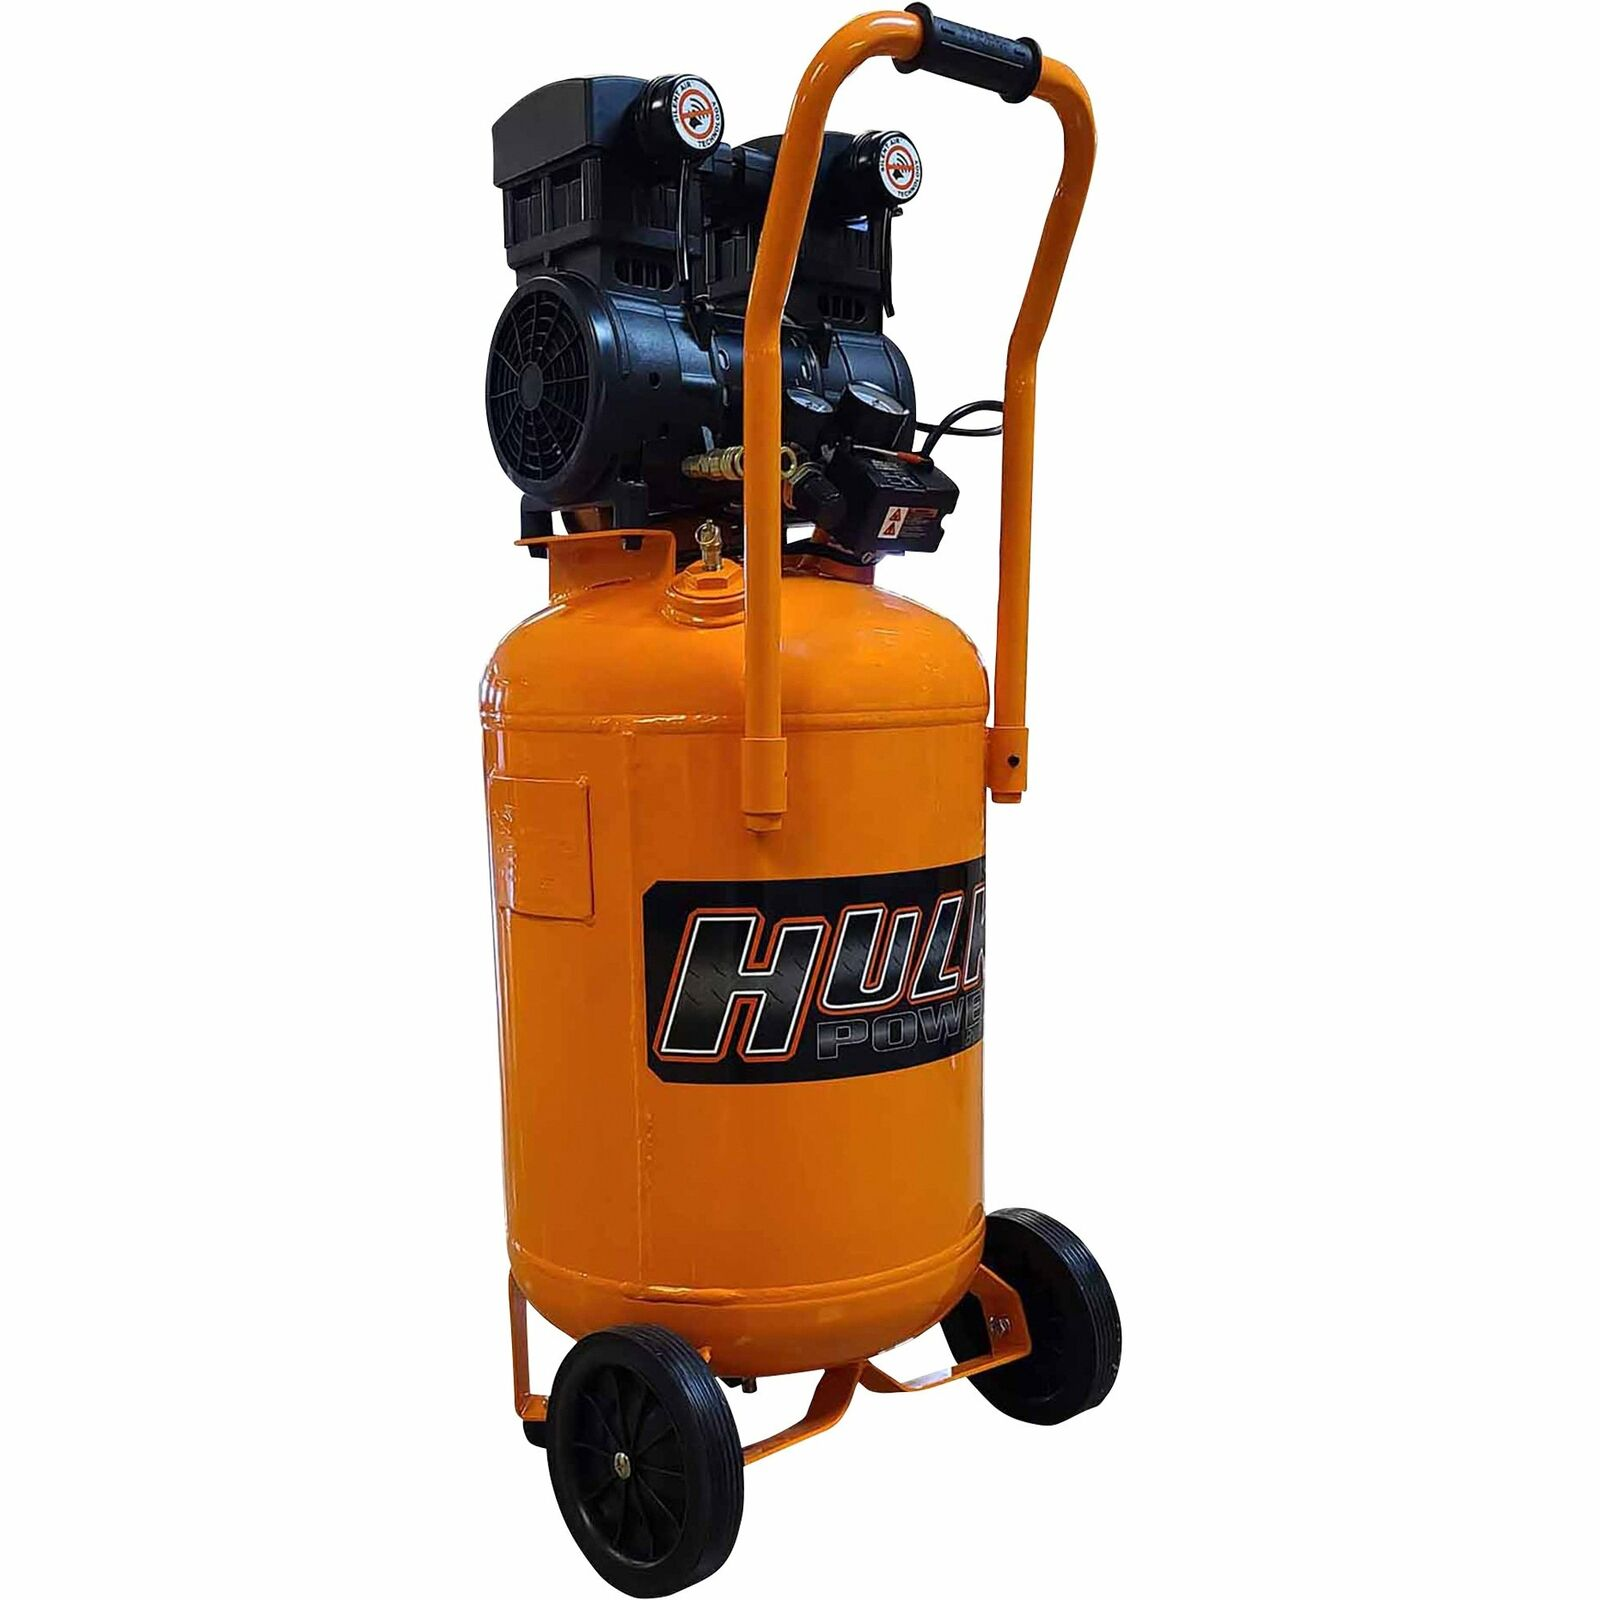 EMAX Hulk Silent Air Portable Air Compressor- 2 HP 20 Gallon Model# HP02P020SS. Buy it now for 399.99